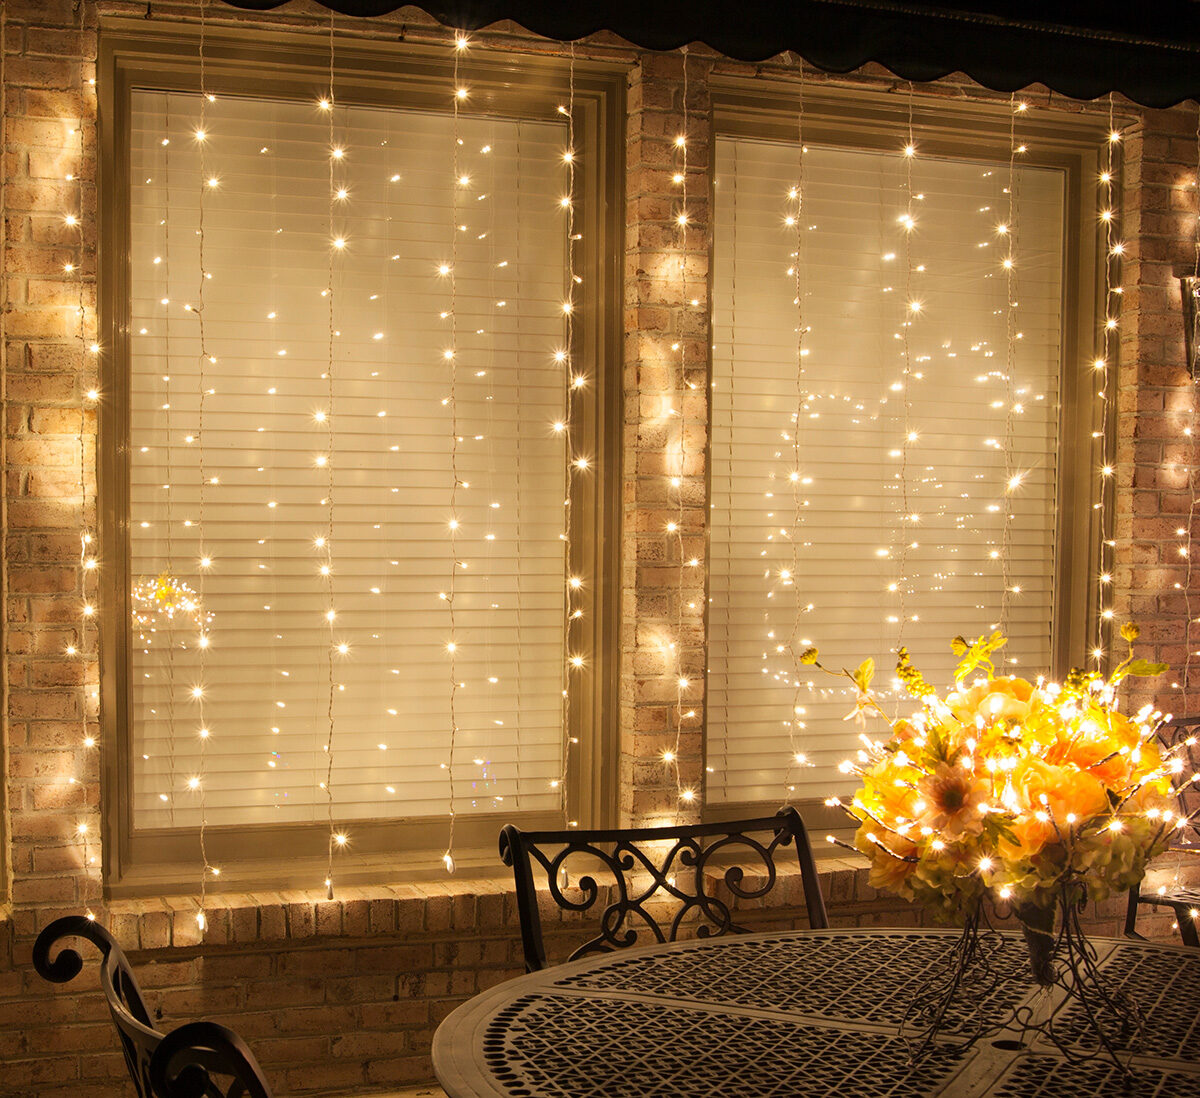 Spoiler Alert! DIY Curtain Lights are Easier Than You Think! - Yard Envy